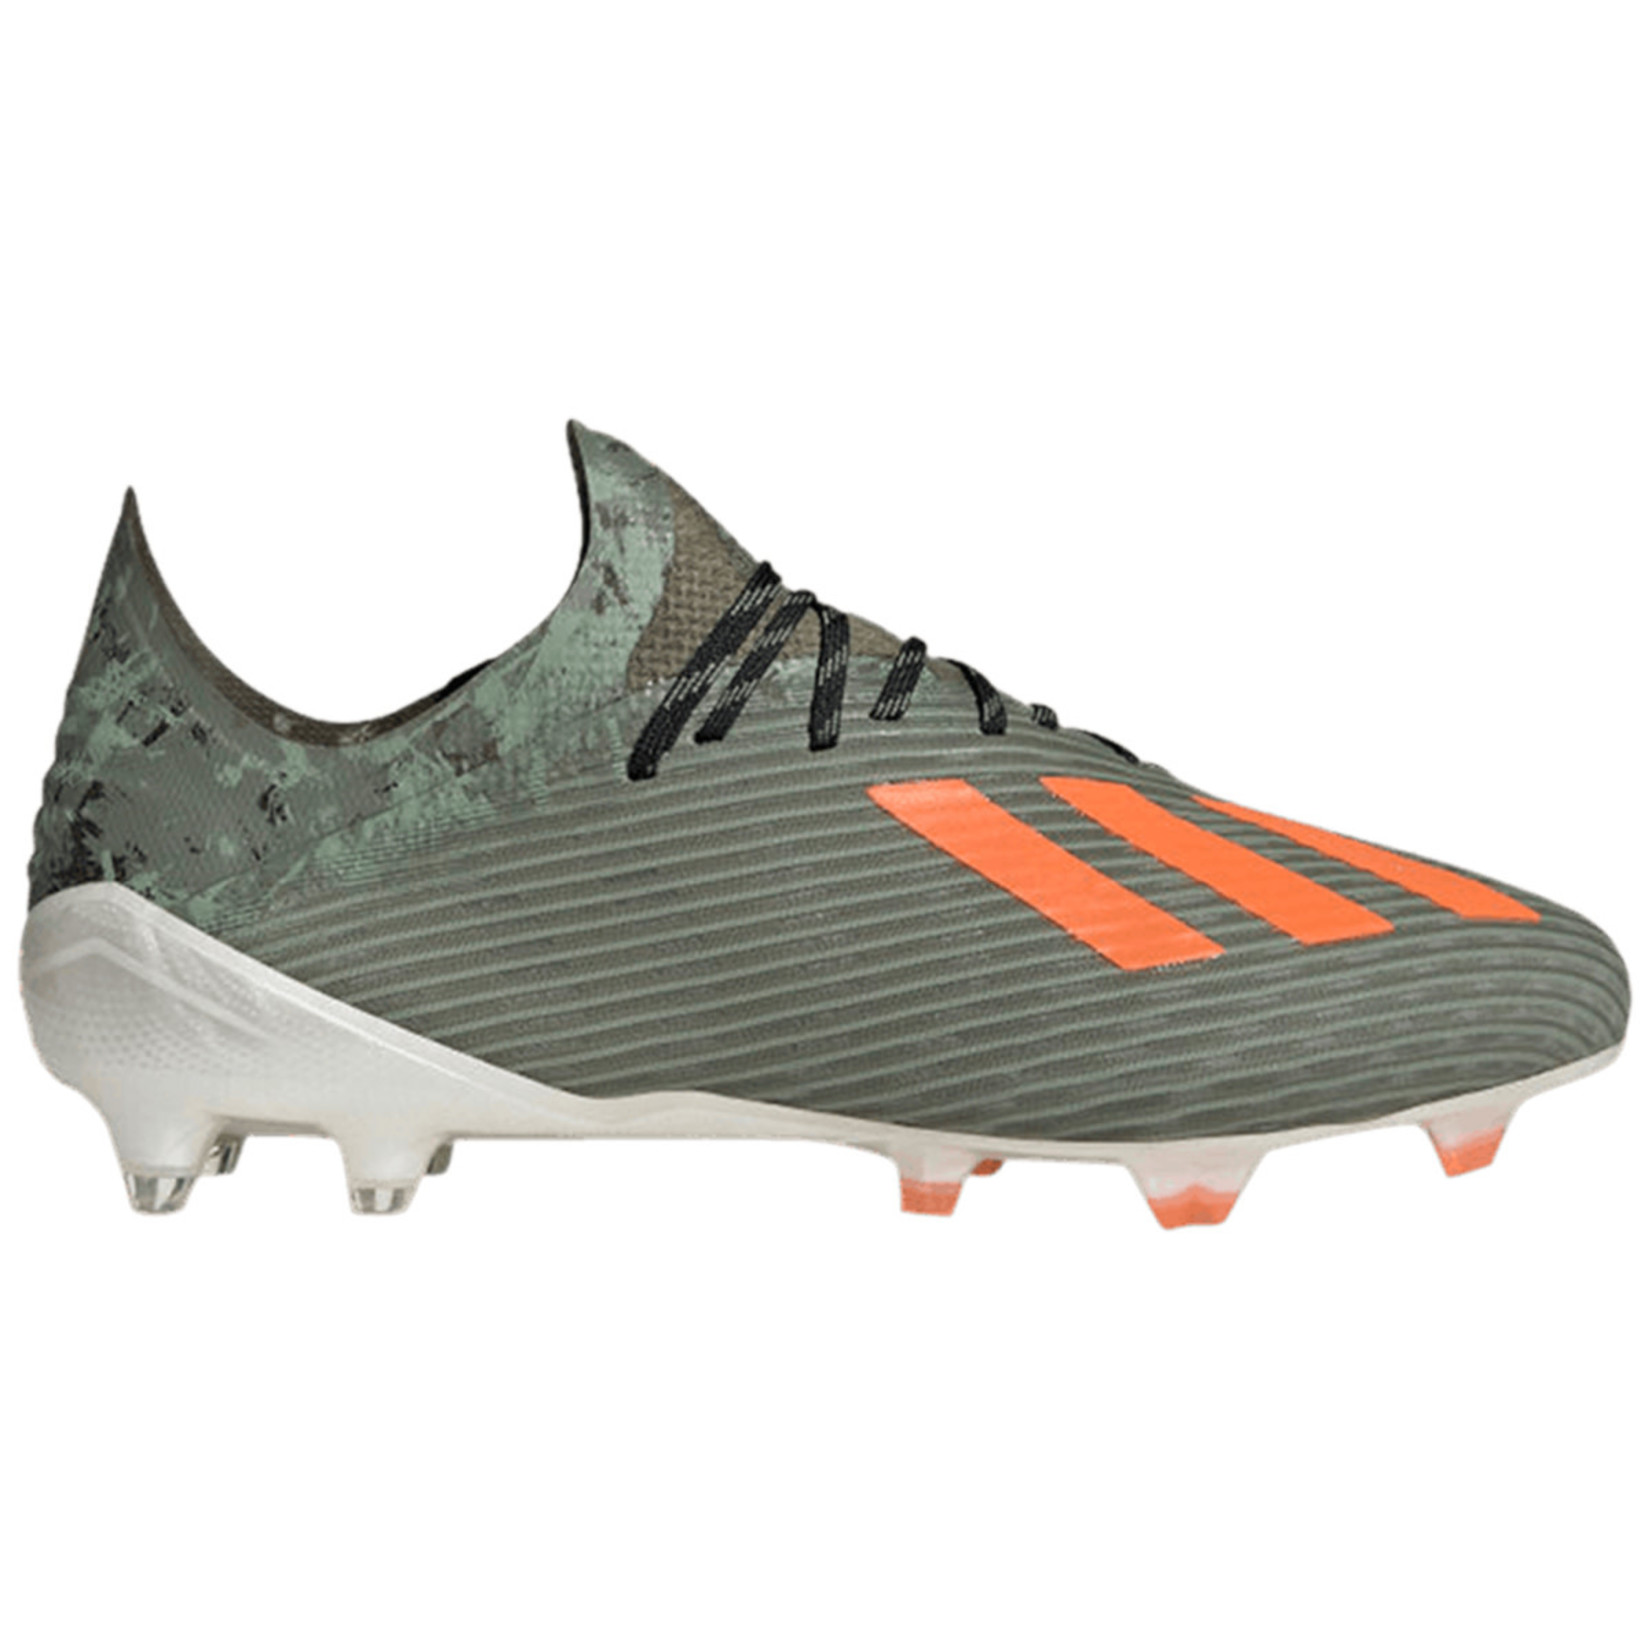 ADIDAS X 19.1 FG (GREEN/ORANGE)